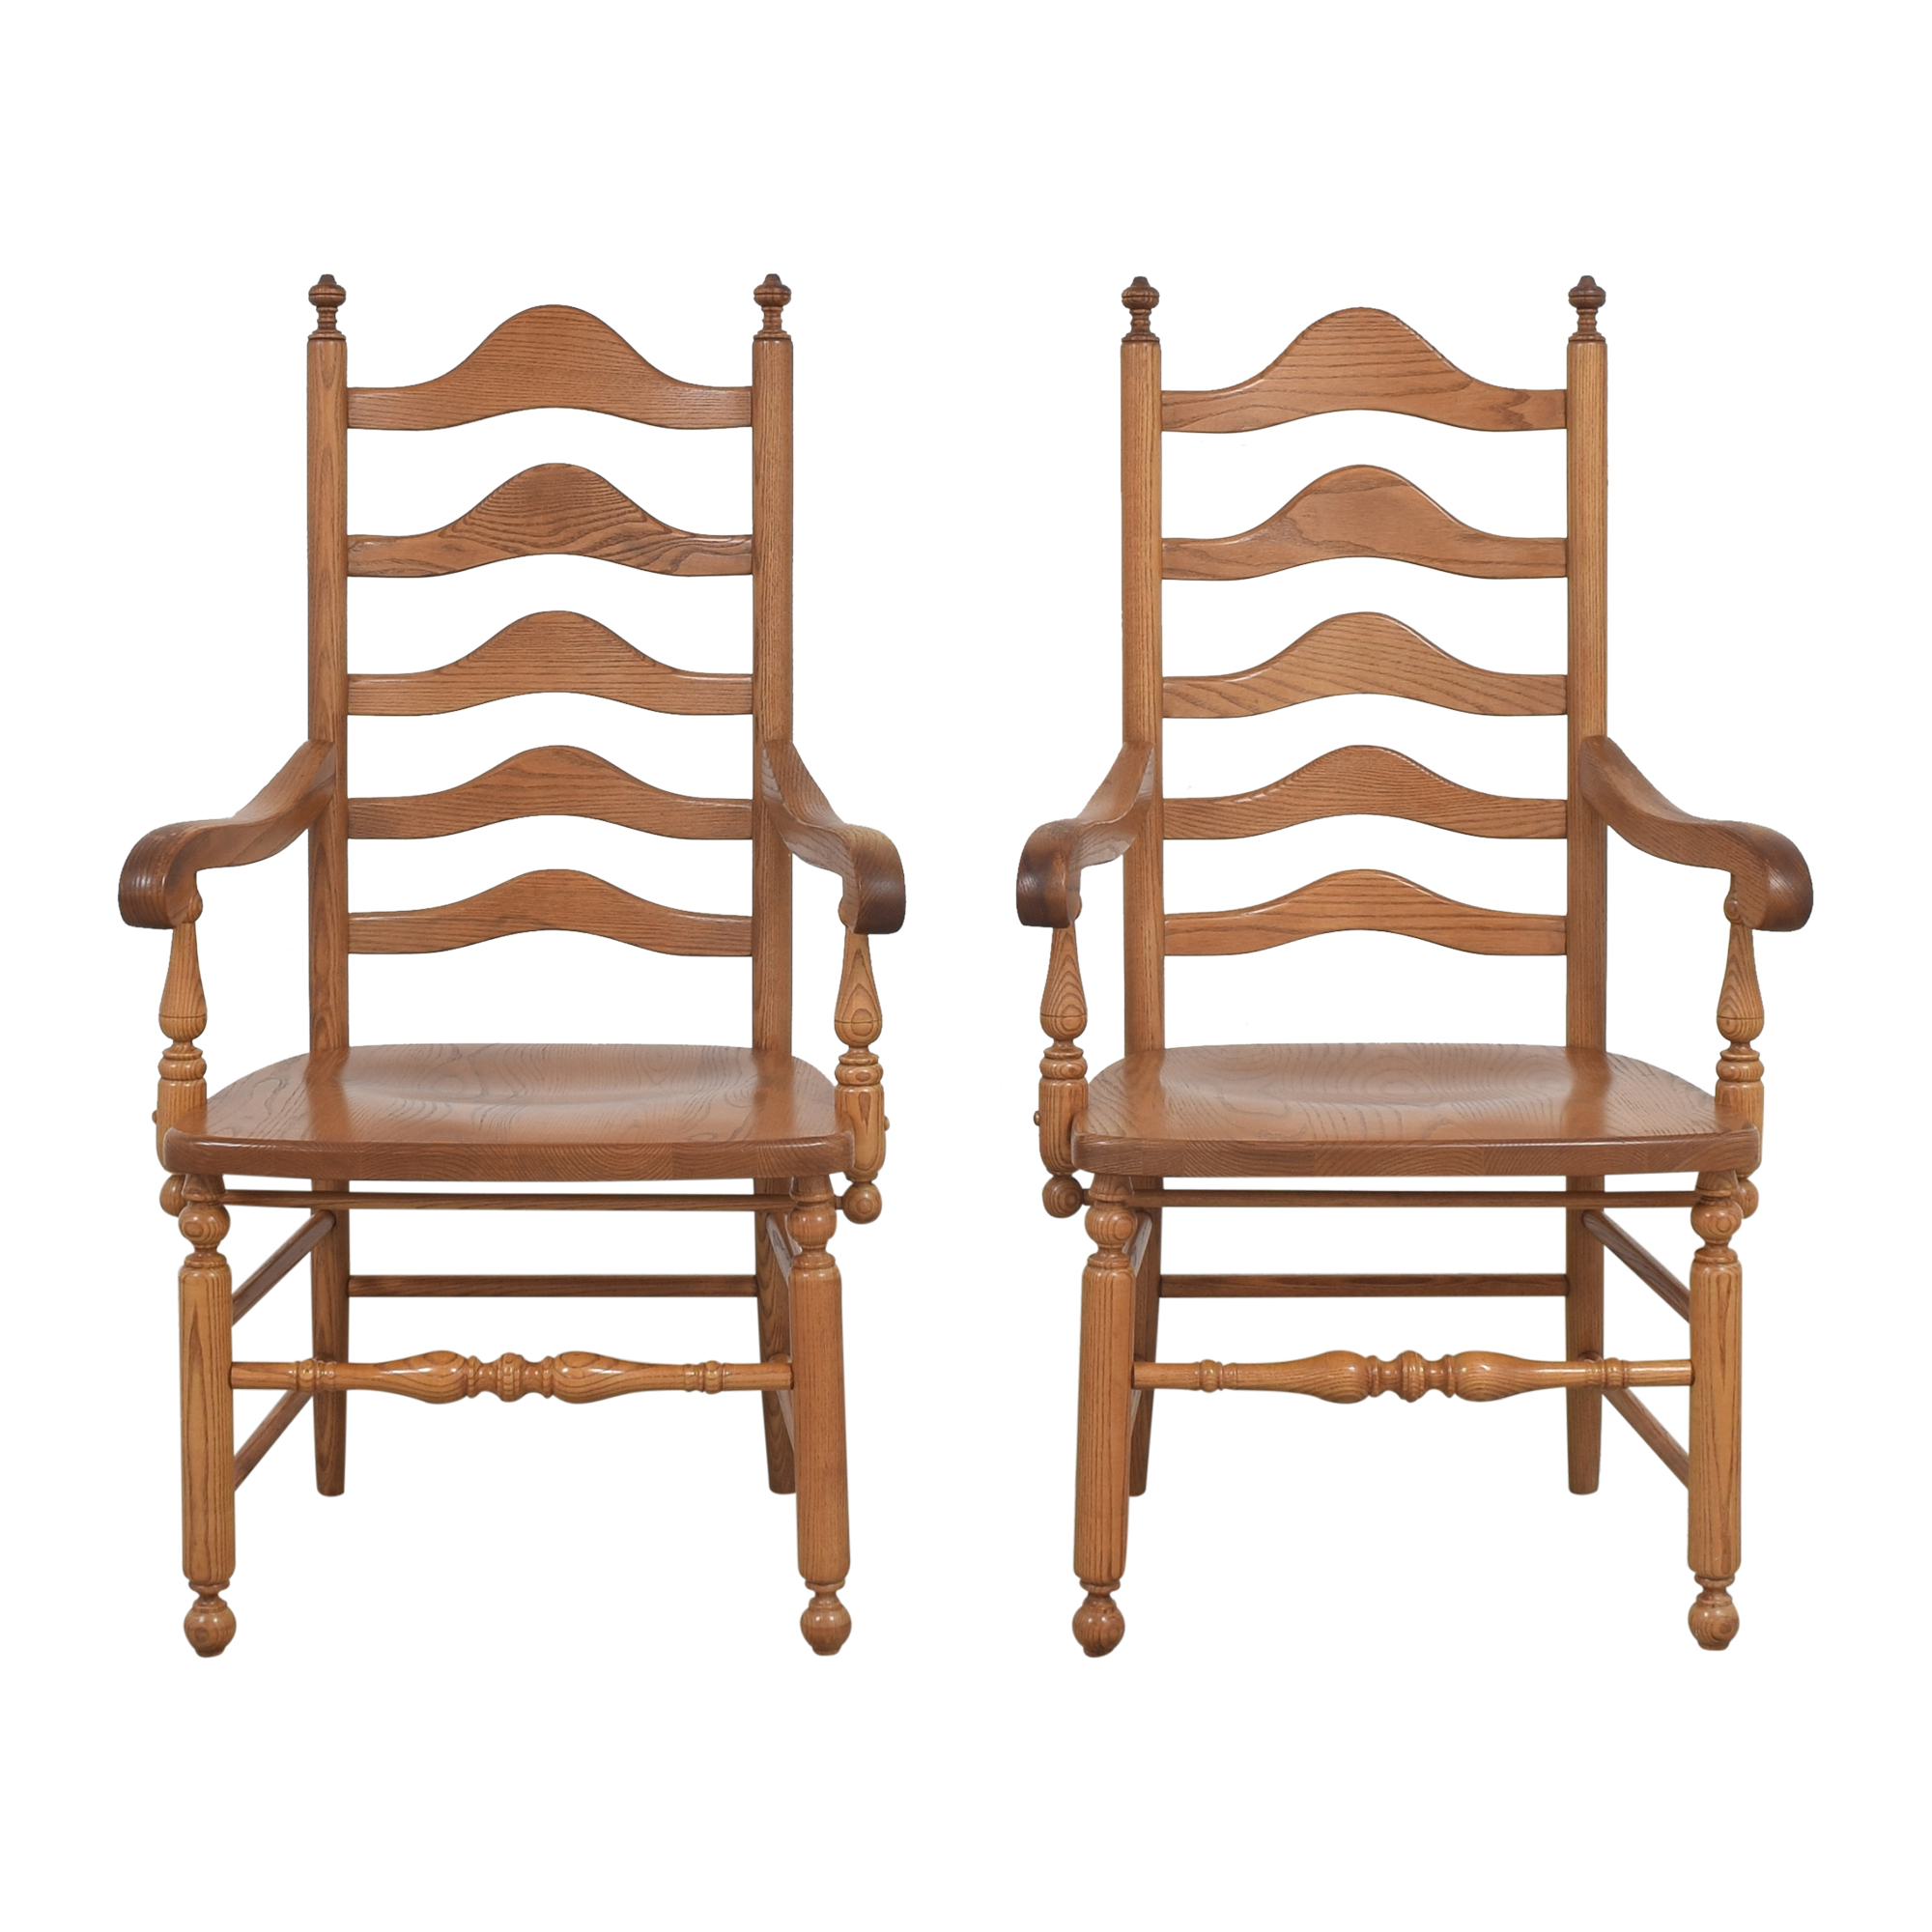 S. Bent & Bros S. Bent & Bros Ladder Back Dining Arm Chairs Dining Chairs